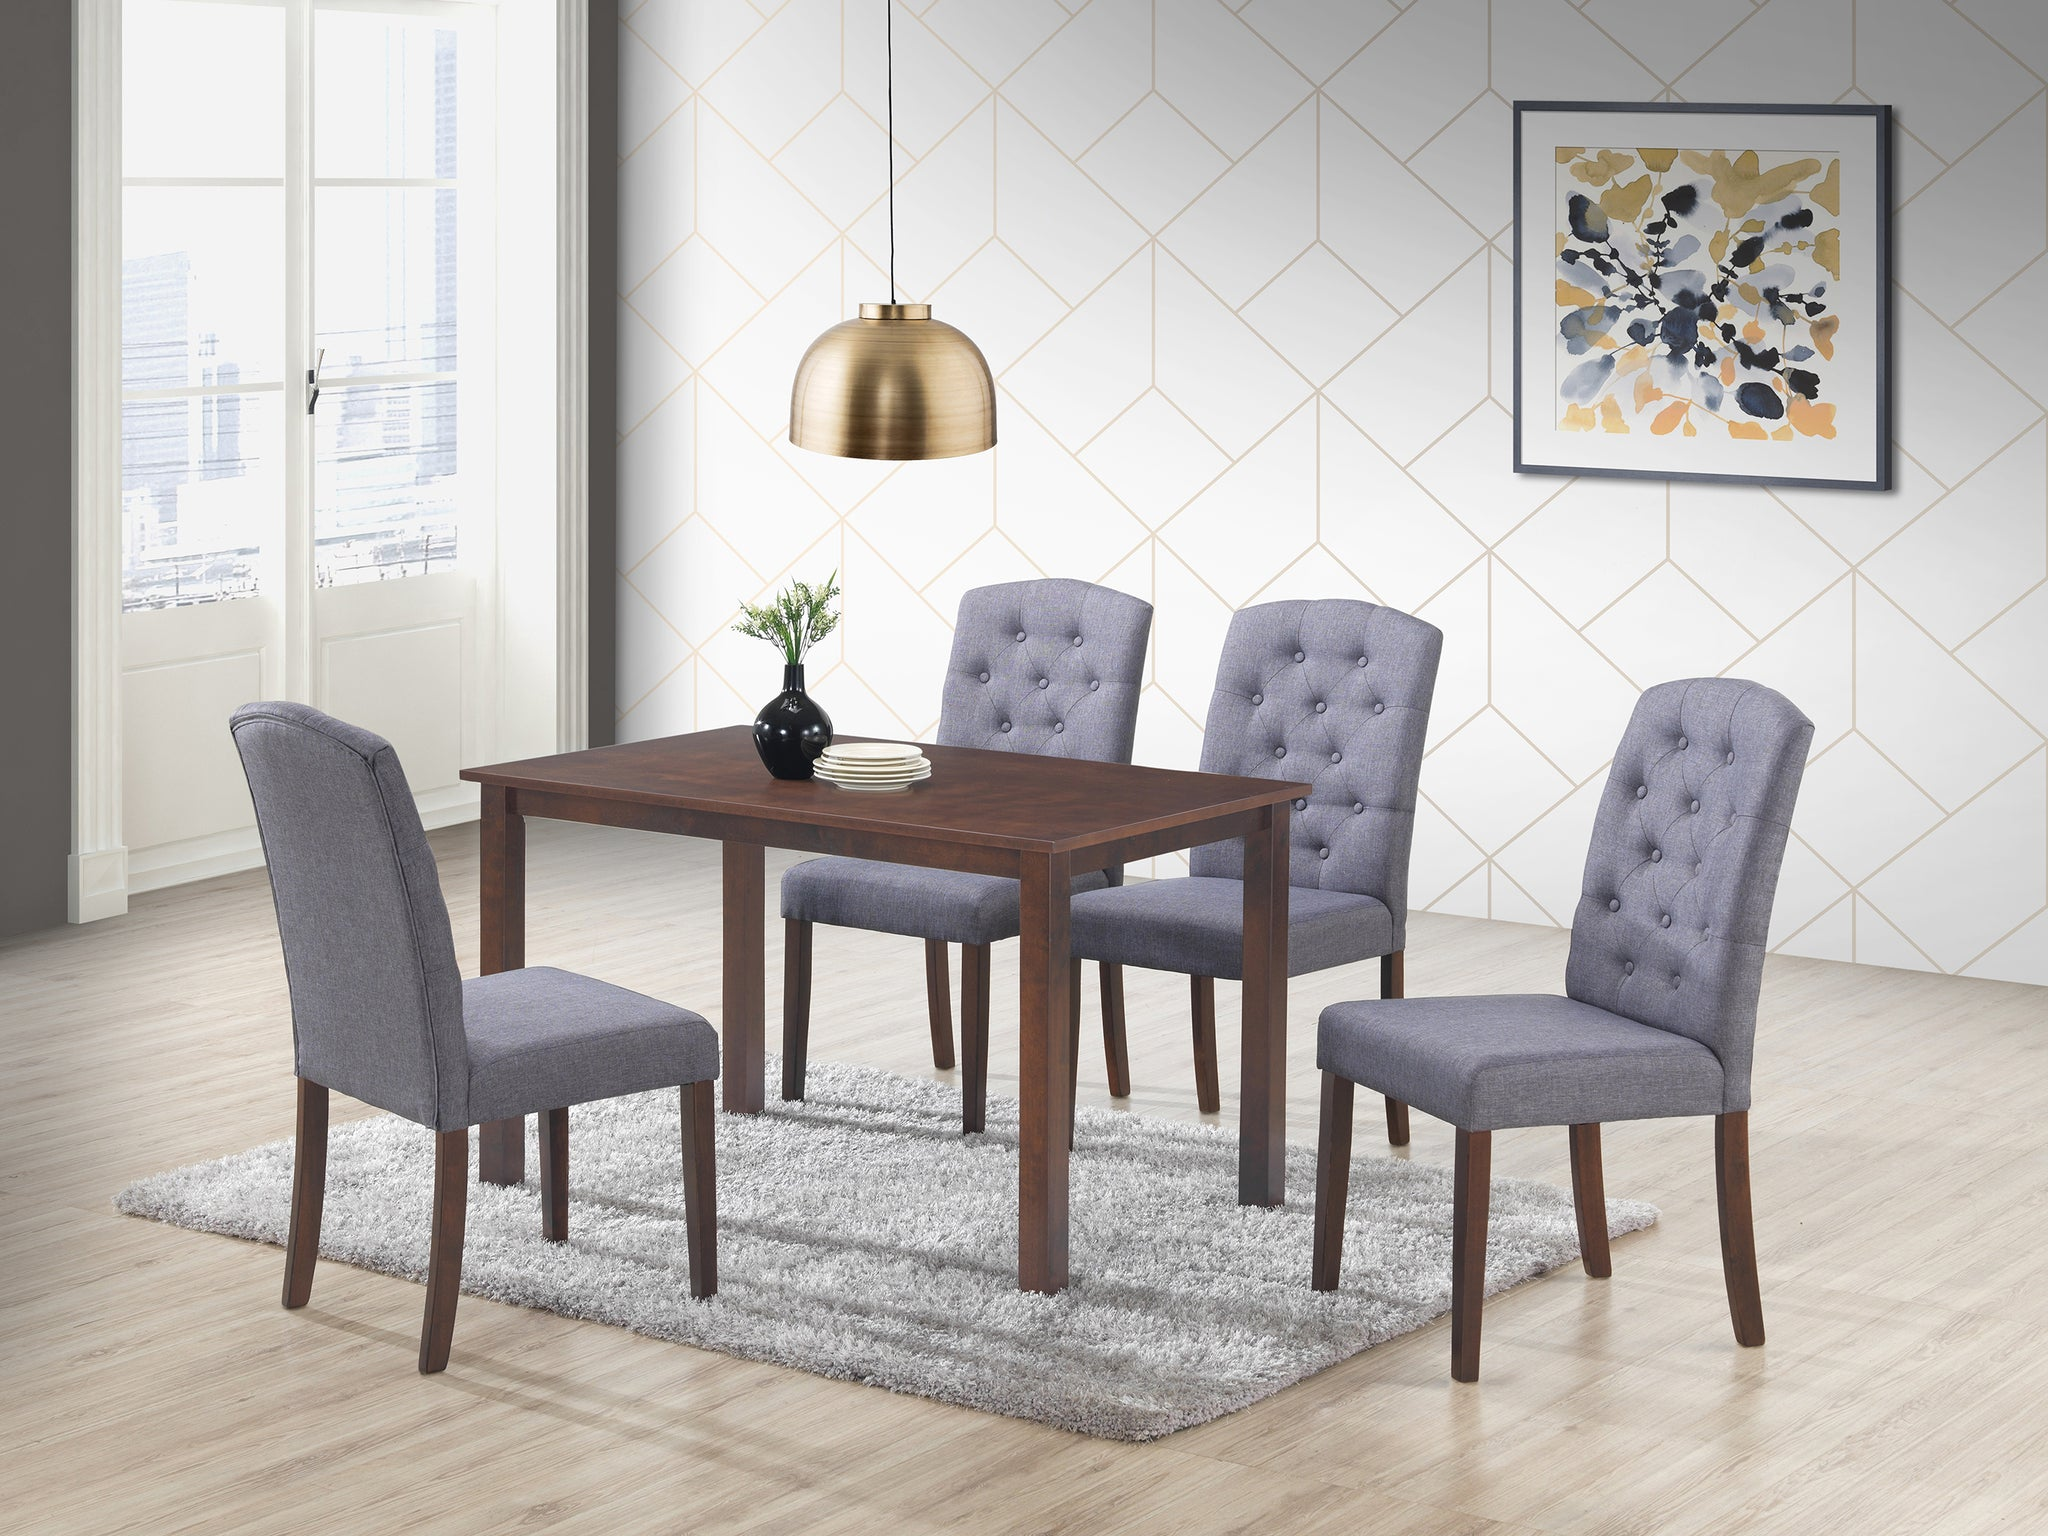 Ingrid Dark Grey 5 Pc. Dining Set